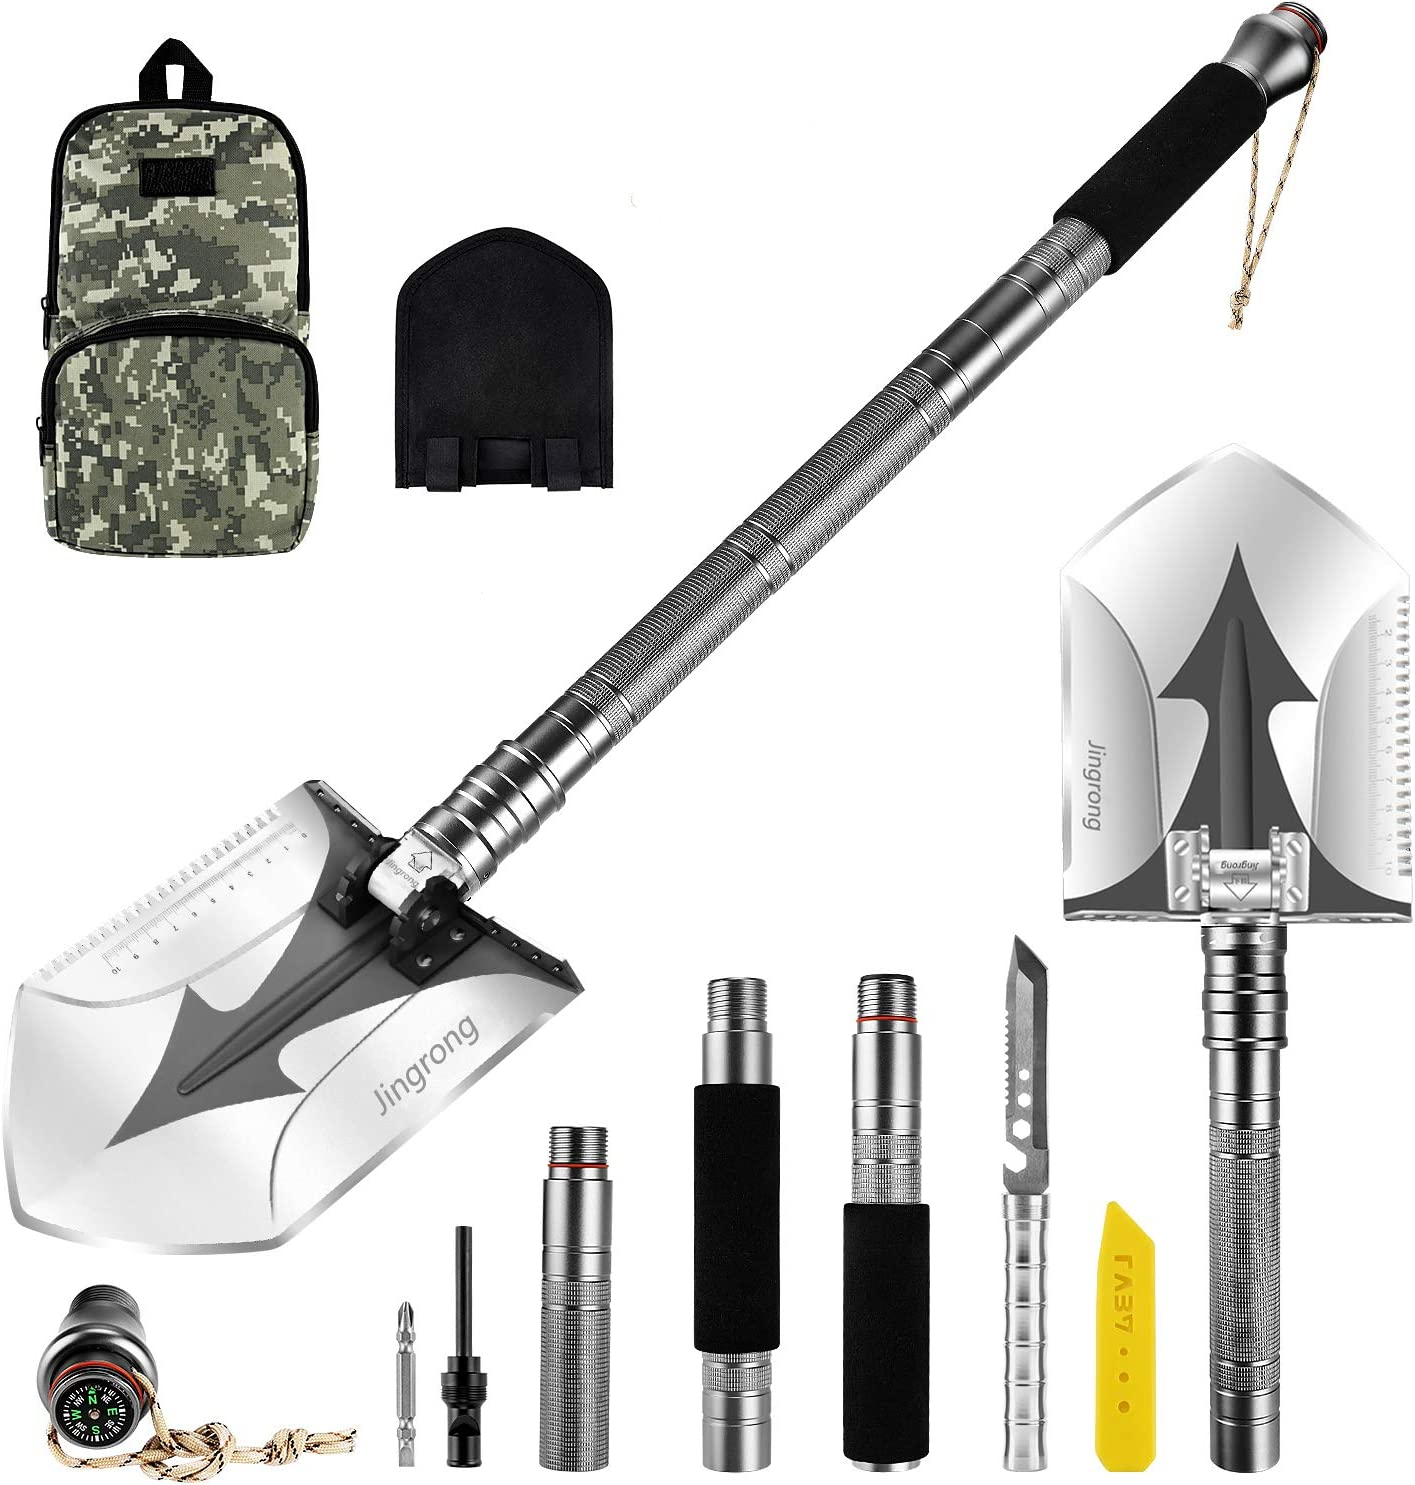 Jingrong Folding Shovel,Tactical Shovel,Portable Military Survival Shovel Multitool and Tactical Waist Pack for Hiking, Backpacking, Dry Camping,Trenching, Entrenching,Survival and Car Emergency